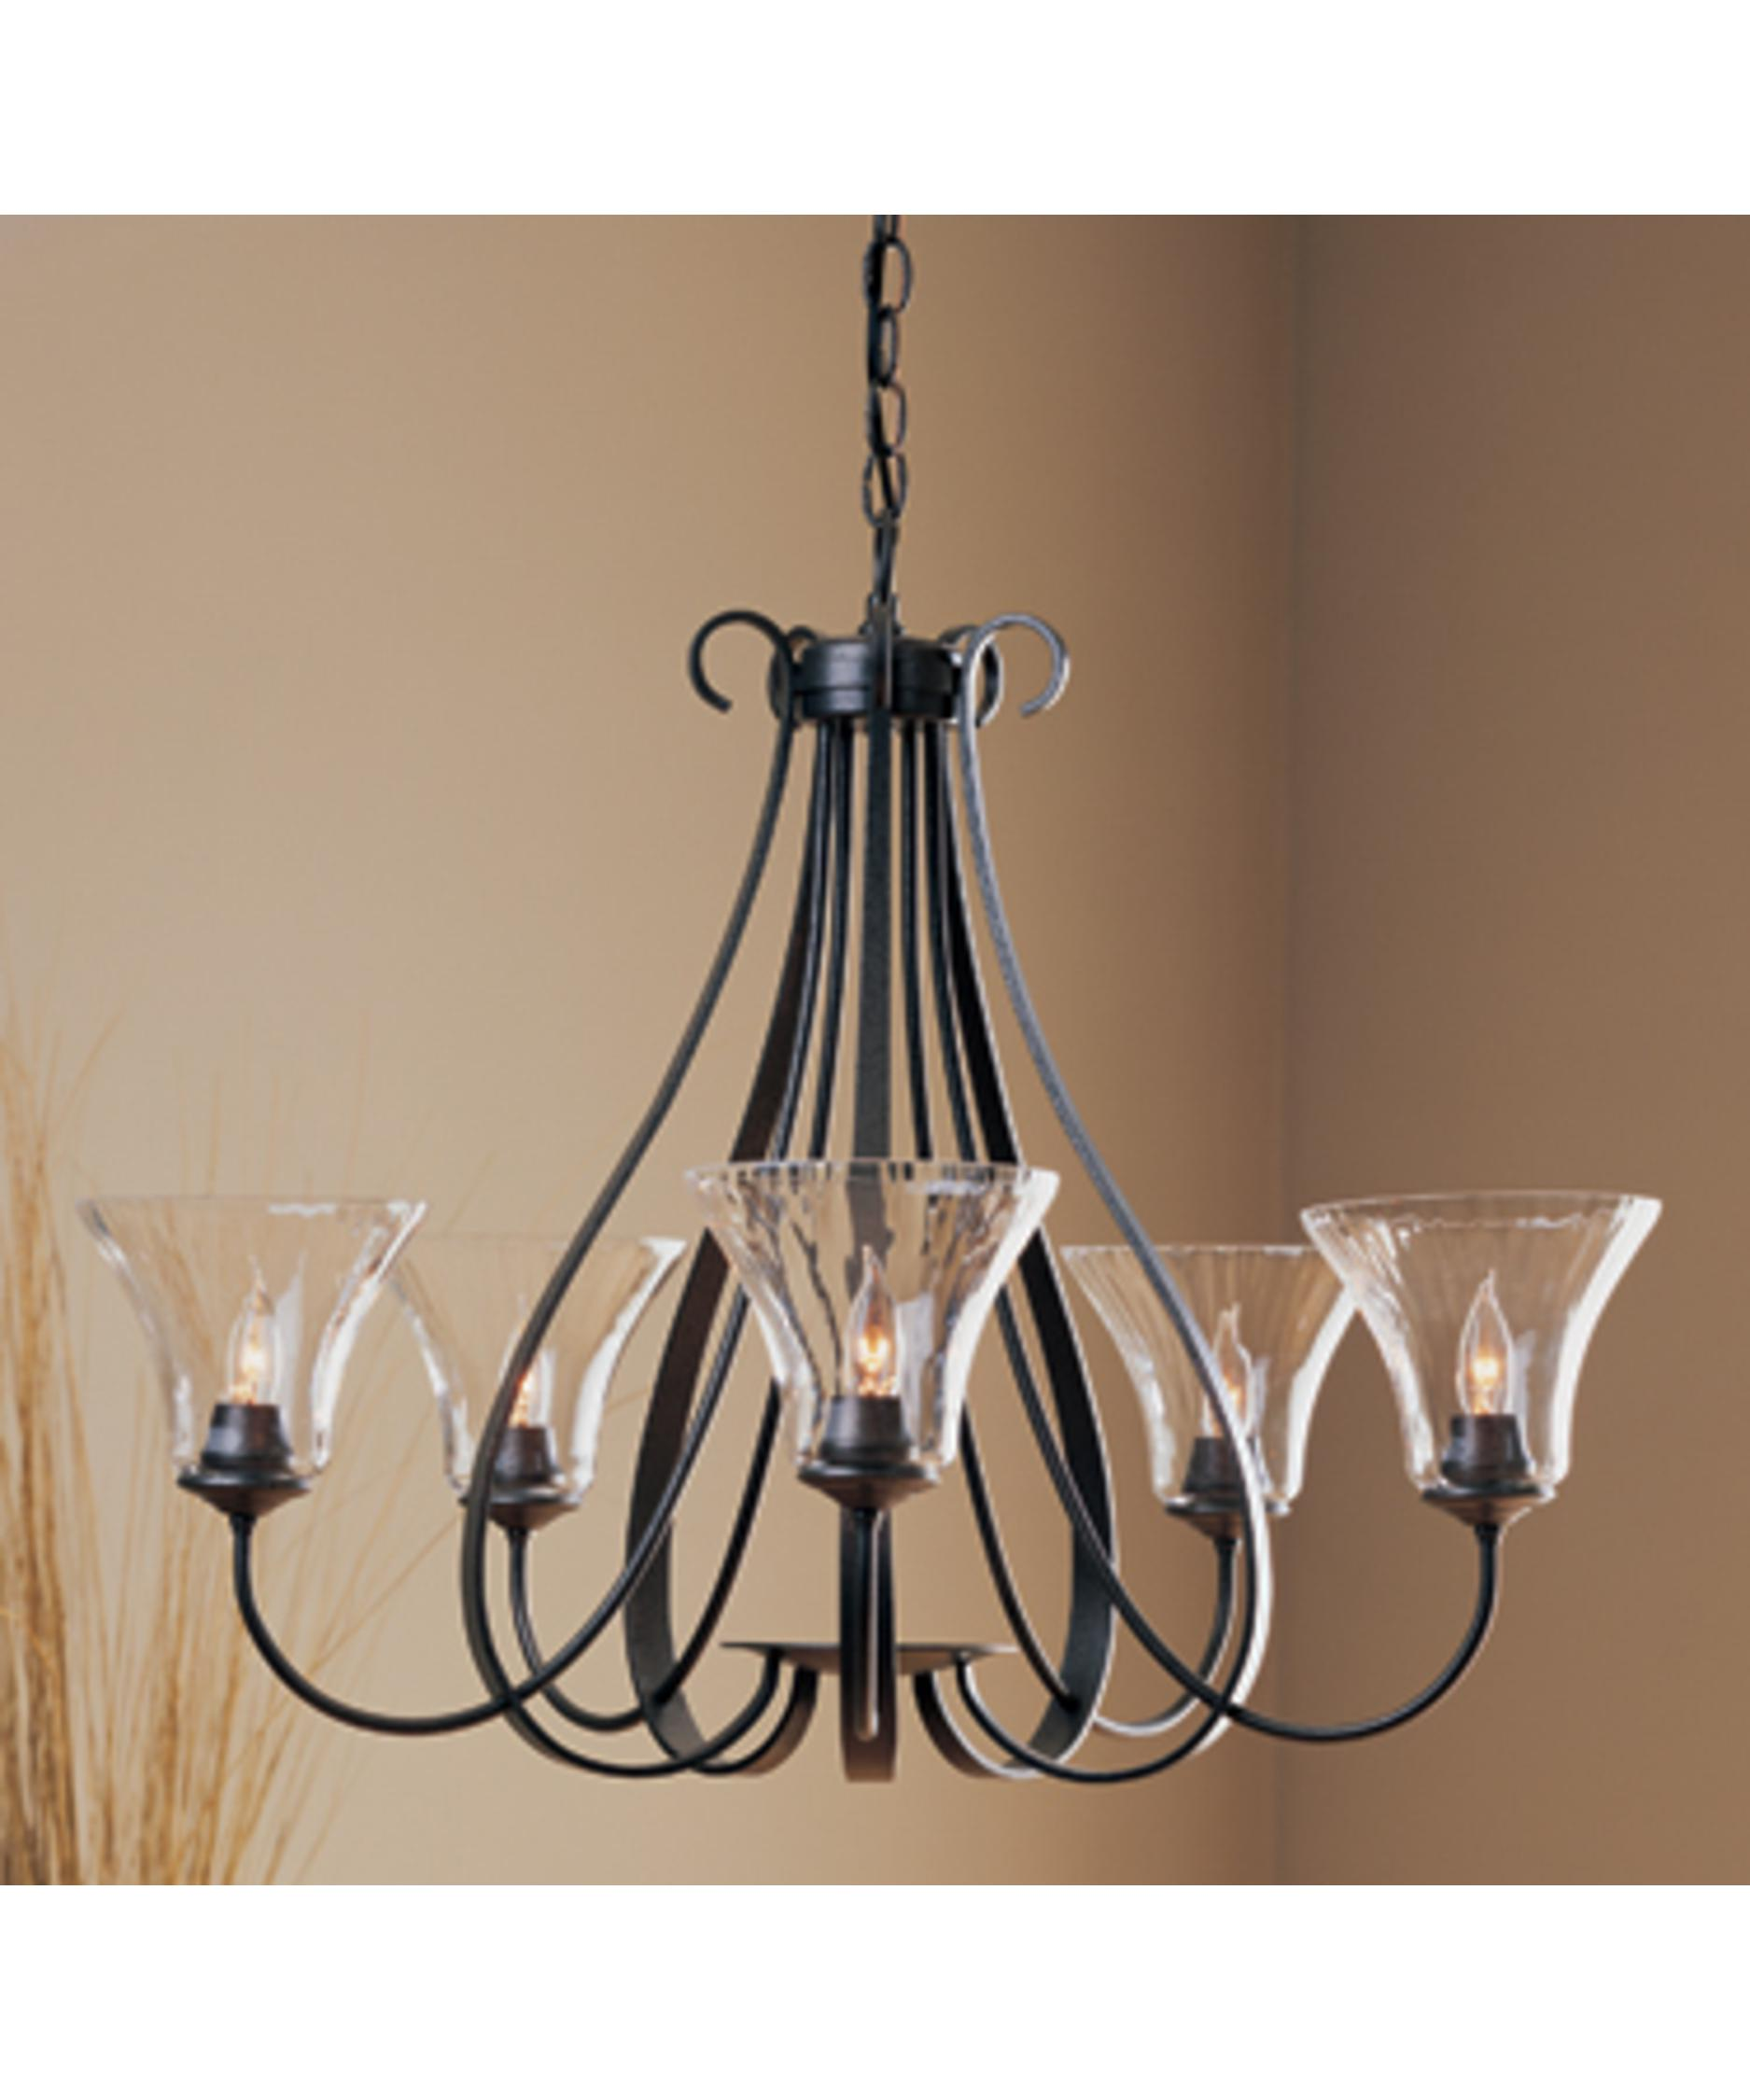 Hubbardton Forge Sweeping Taper: Hubbardton Forge 10-1454 Sweeping Taper 30 Inch Chandelier